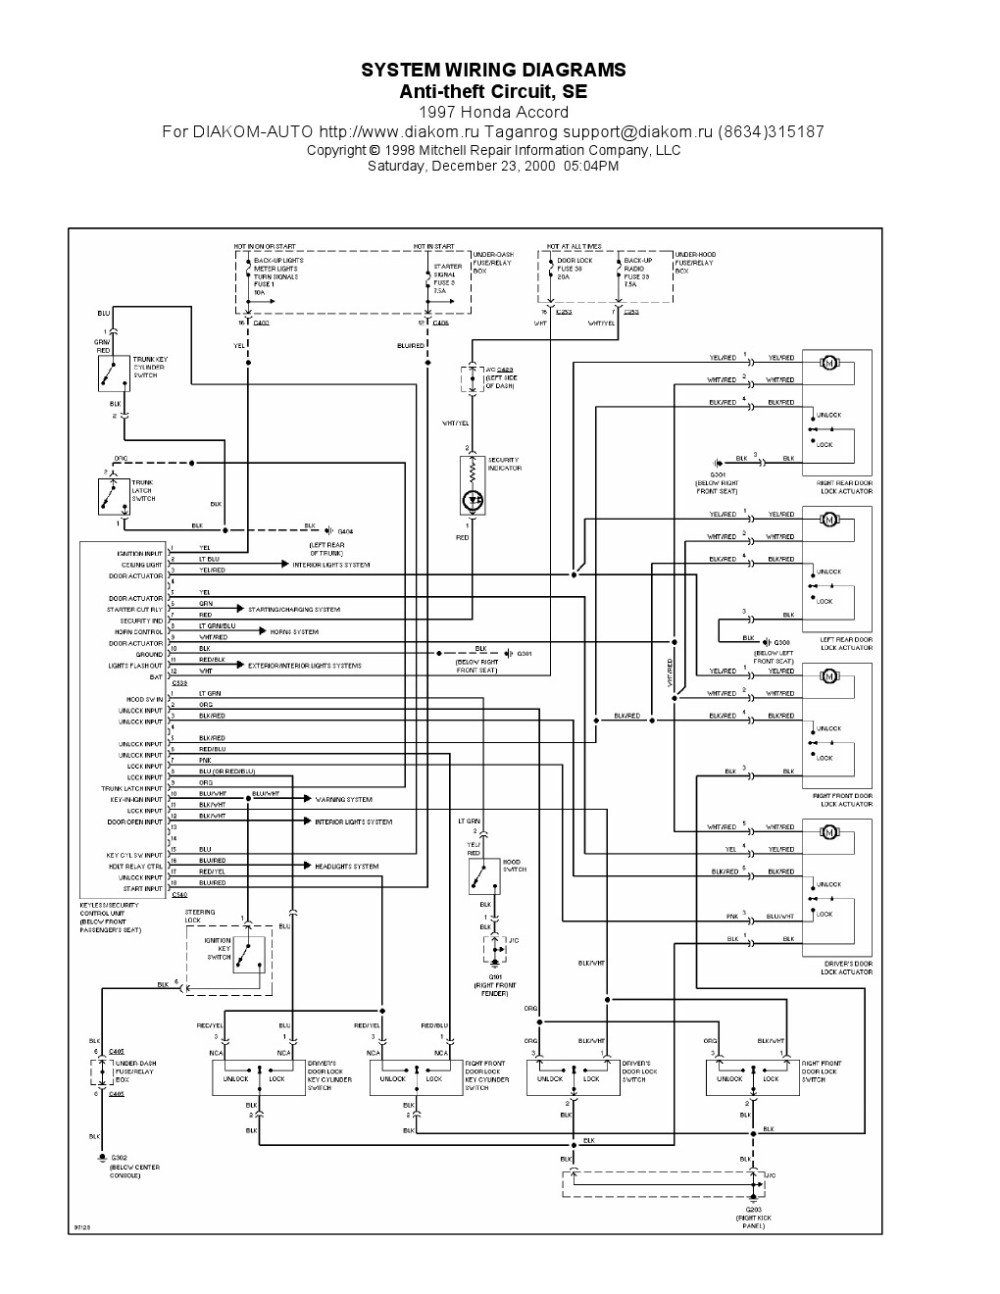 medium resolution of 97 accord wire diagram wiring diagram toolbox 1997 honda accord ignition system wiring diagram 1997 honda accord wiring system